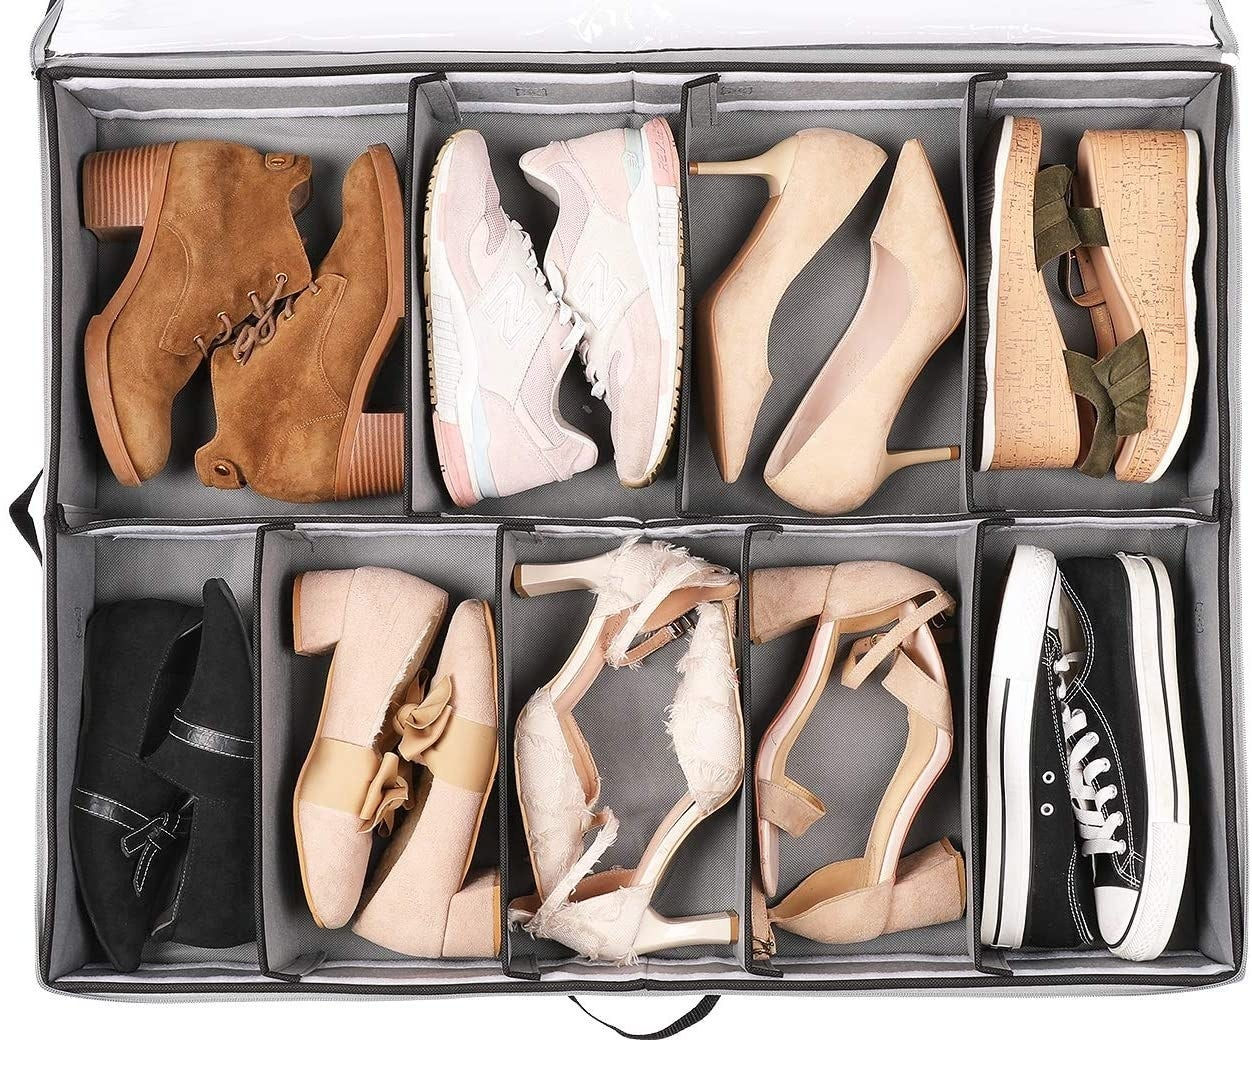 A large fabric bin with nine pairs of shoes organized inside